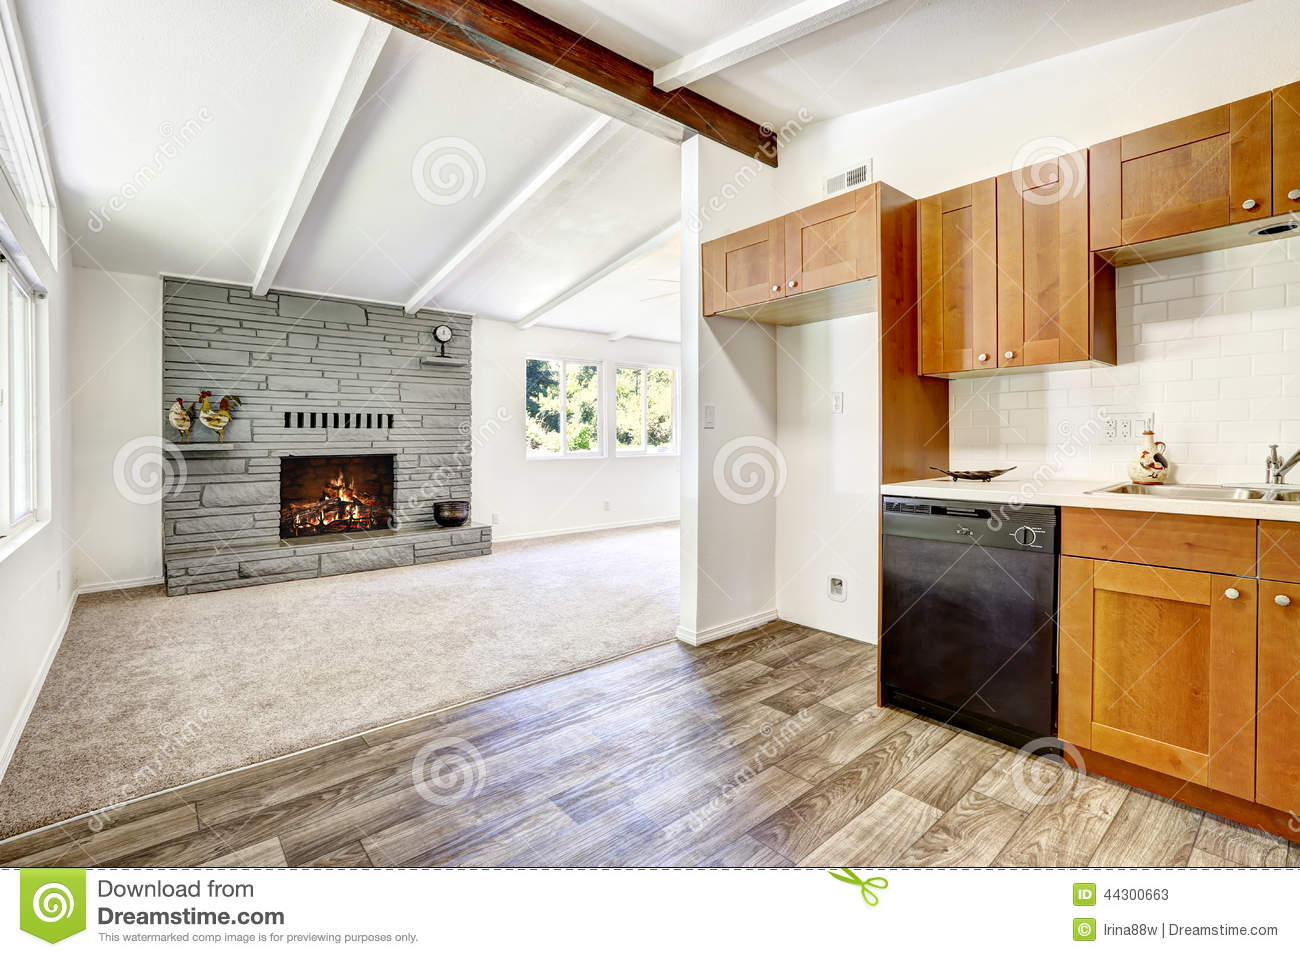 Carpet Empty Fireplace Floor House Interior Kitchen Living Old Room